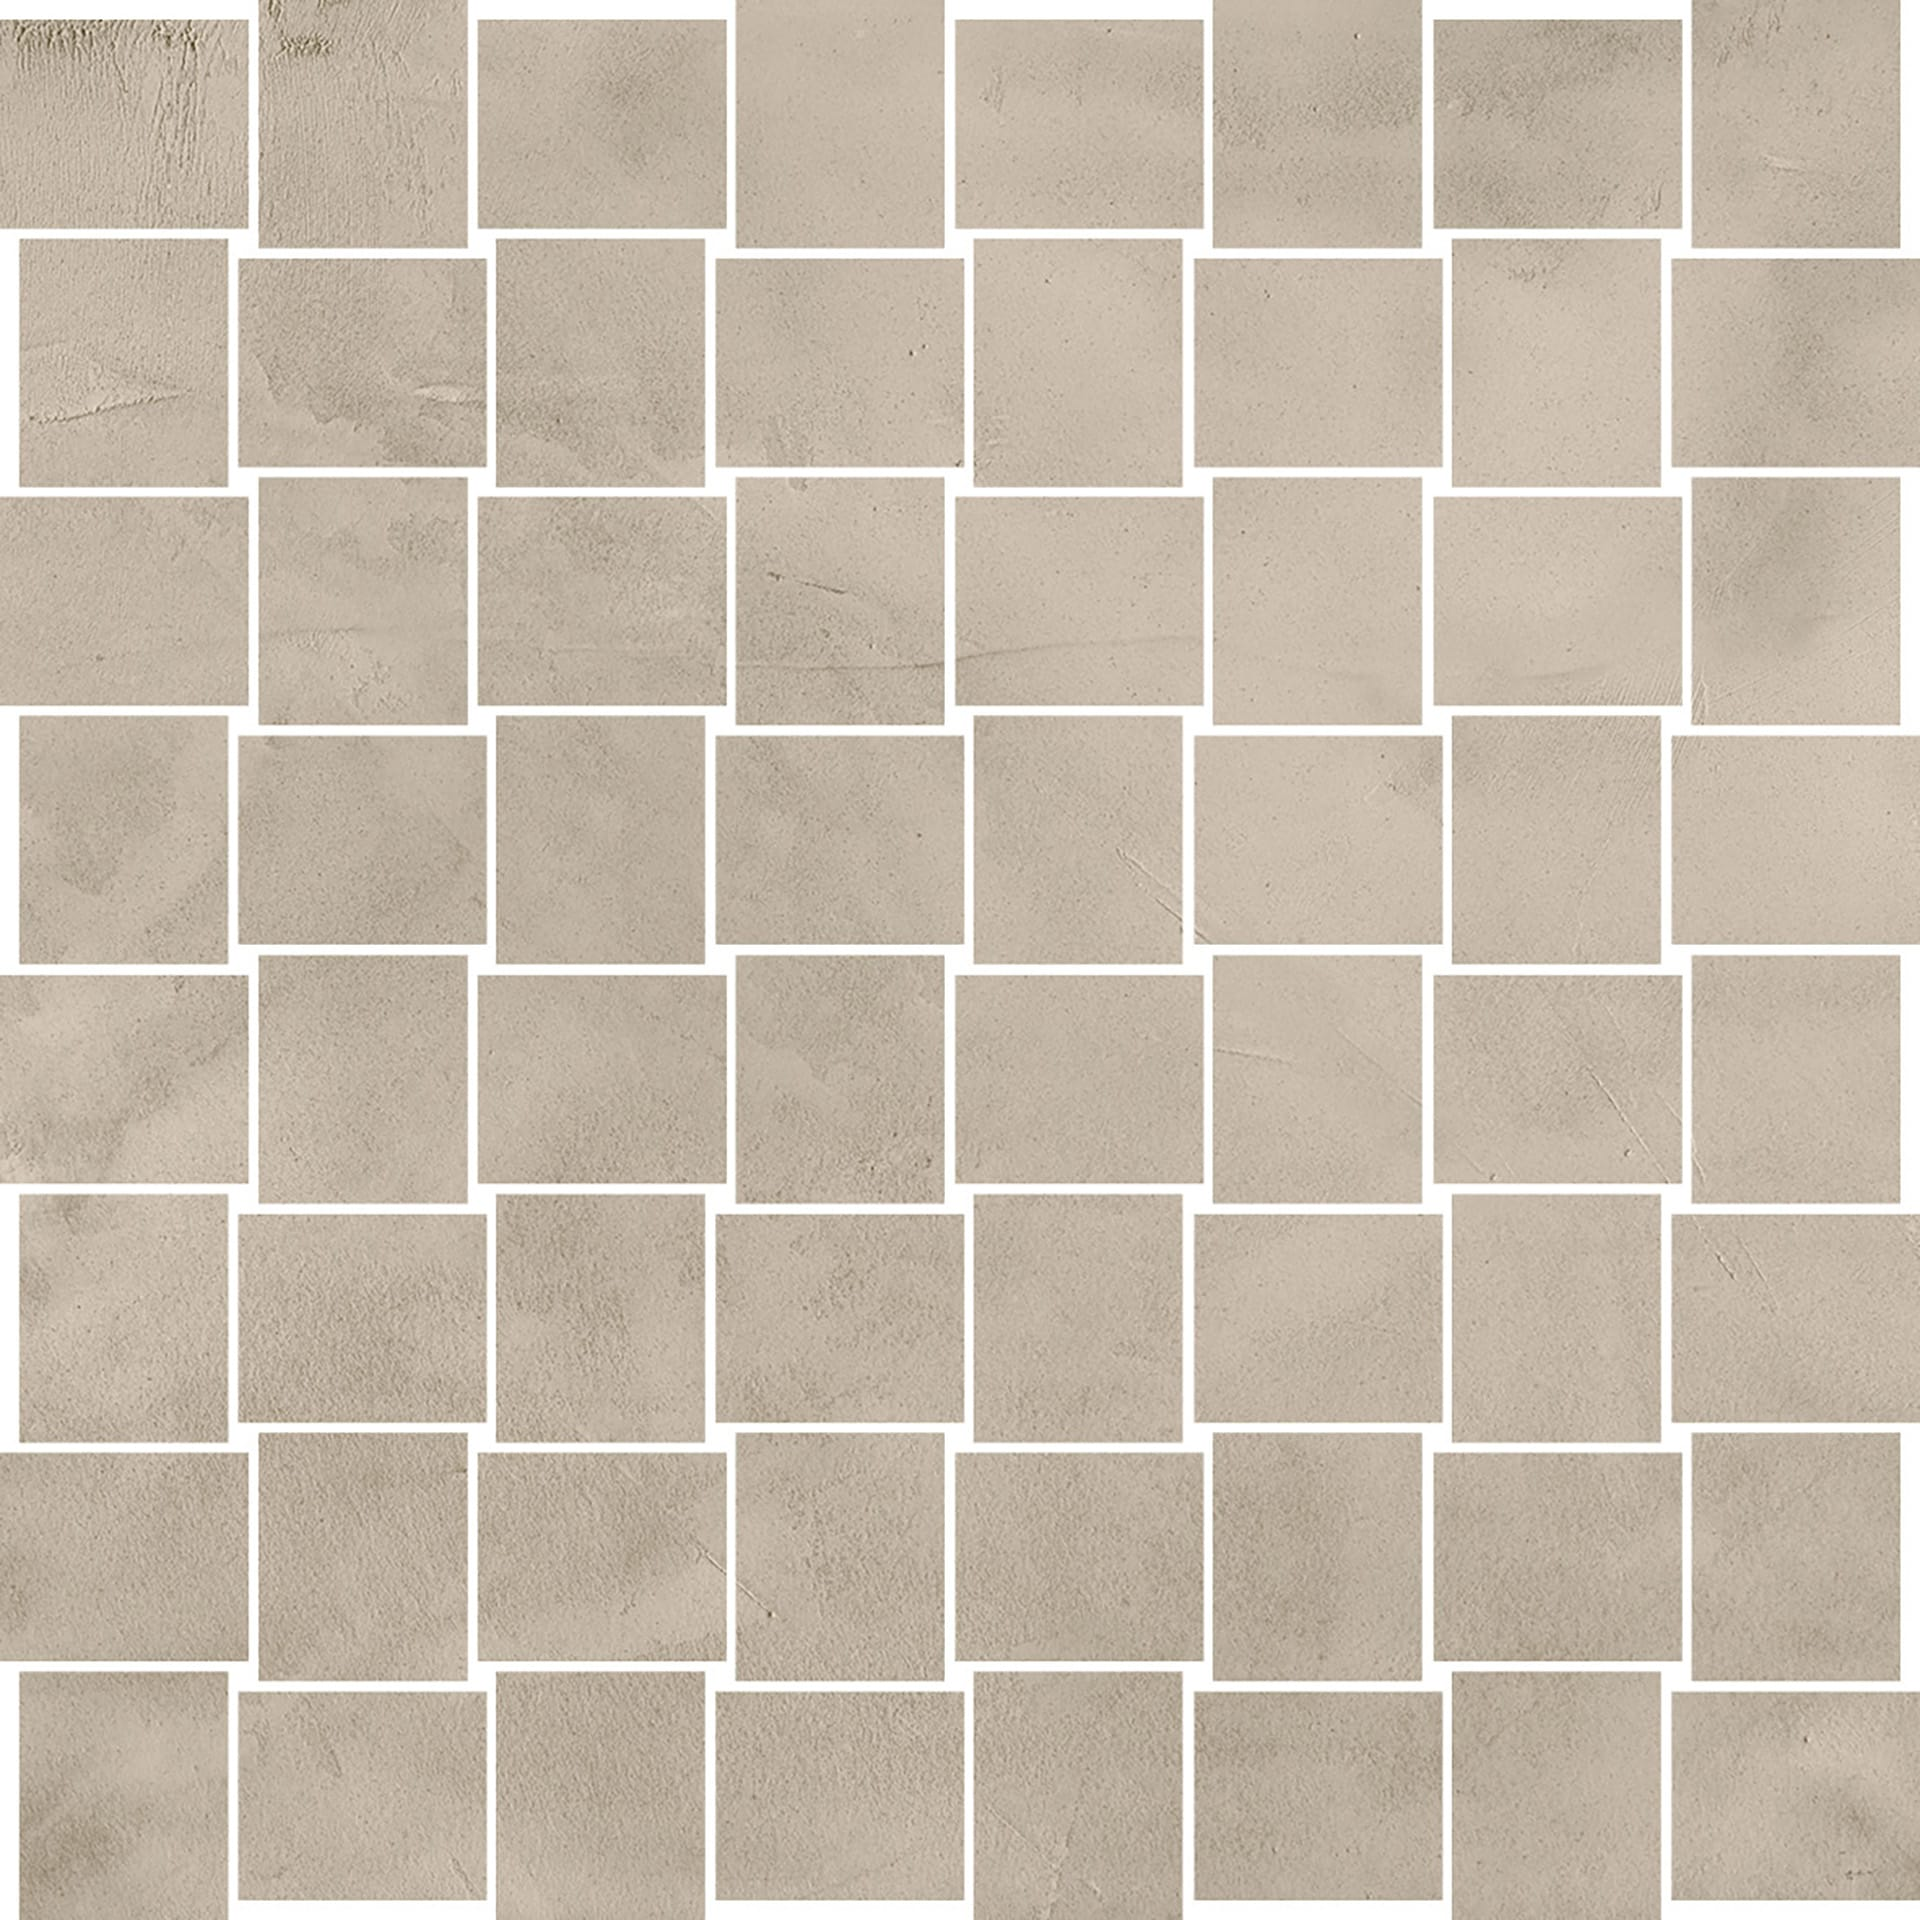 Concrete Effect Tiles for Walls and Floor - Res Cover by Ricchetti